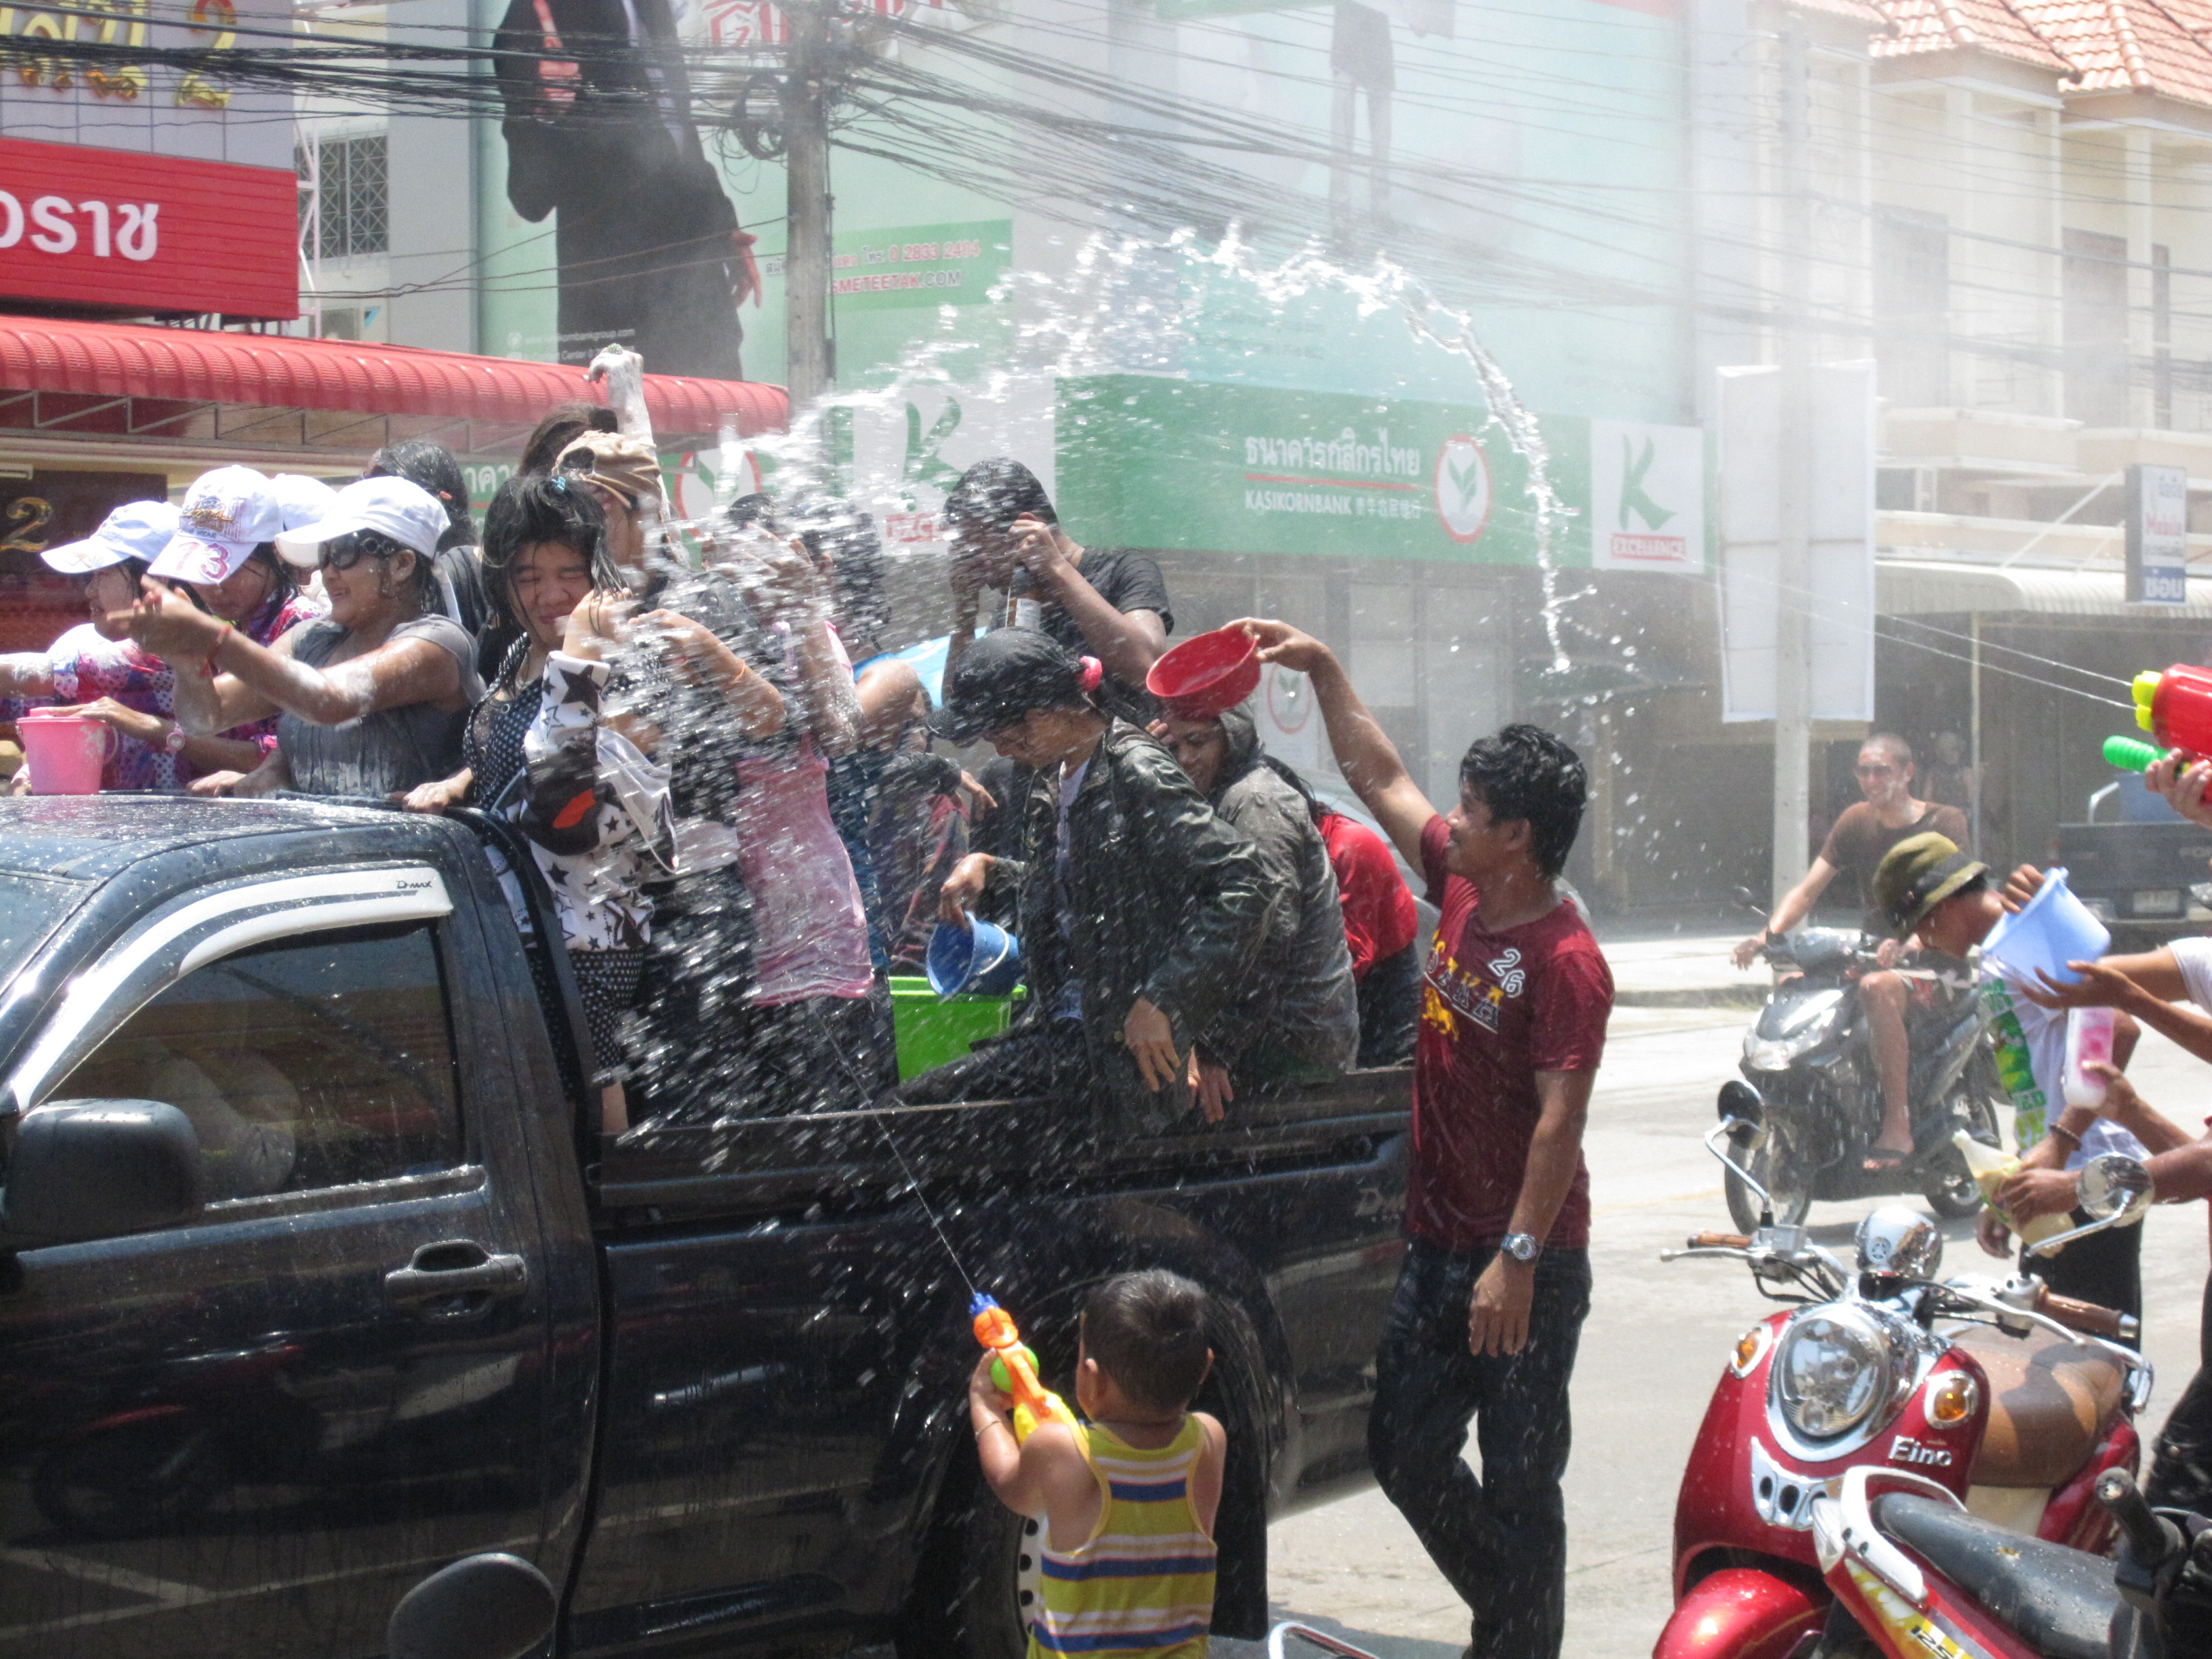 songkran essay Songkran festival in chiang mai, thailand songkran is the traditional celebration of new year's day in thailand photo essay: light and shadow in.